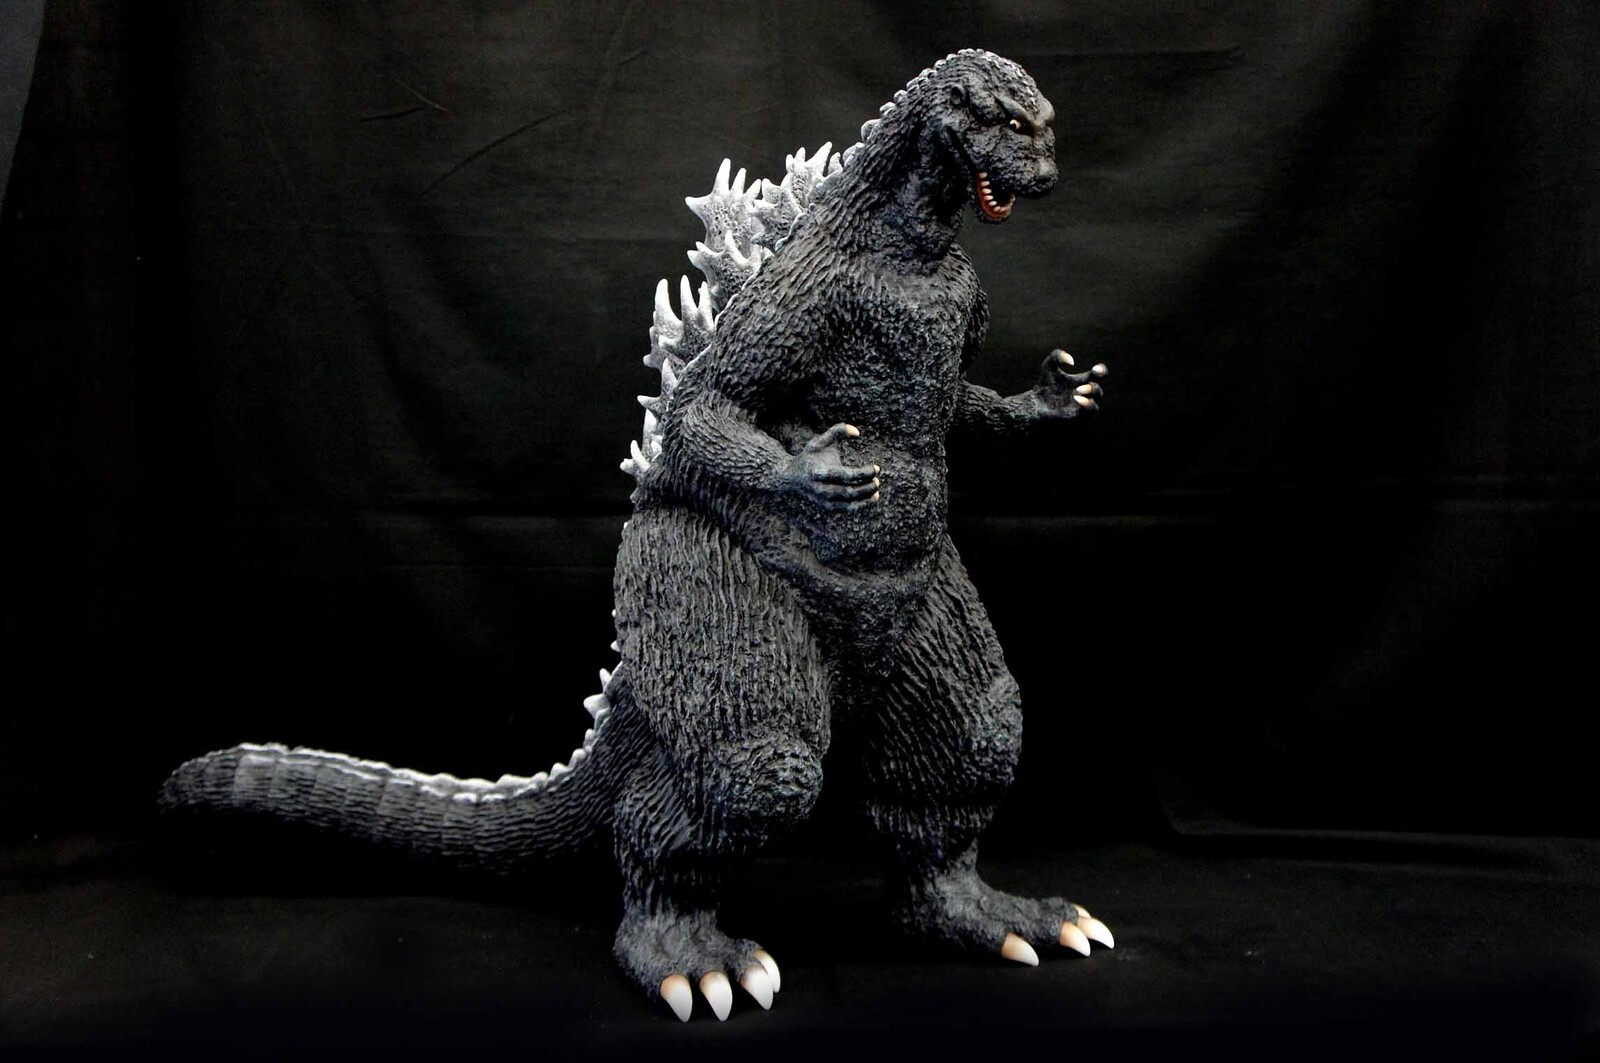 1954 Godzilla 60 cm Art Statue  初代 ゴジラ https://www.solidart.club/